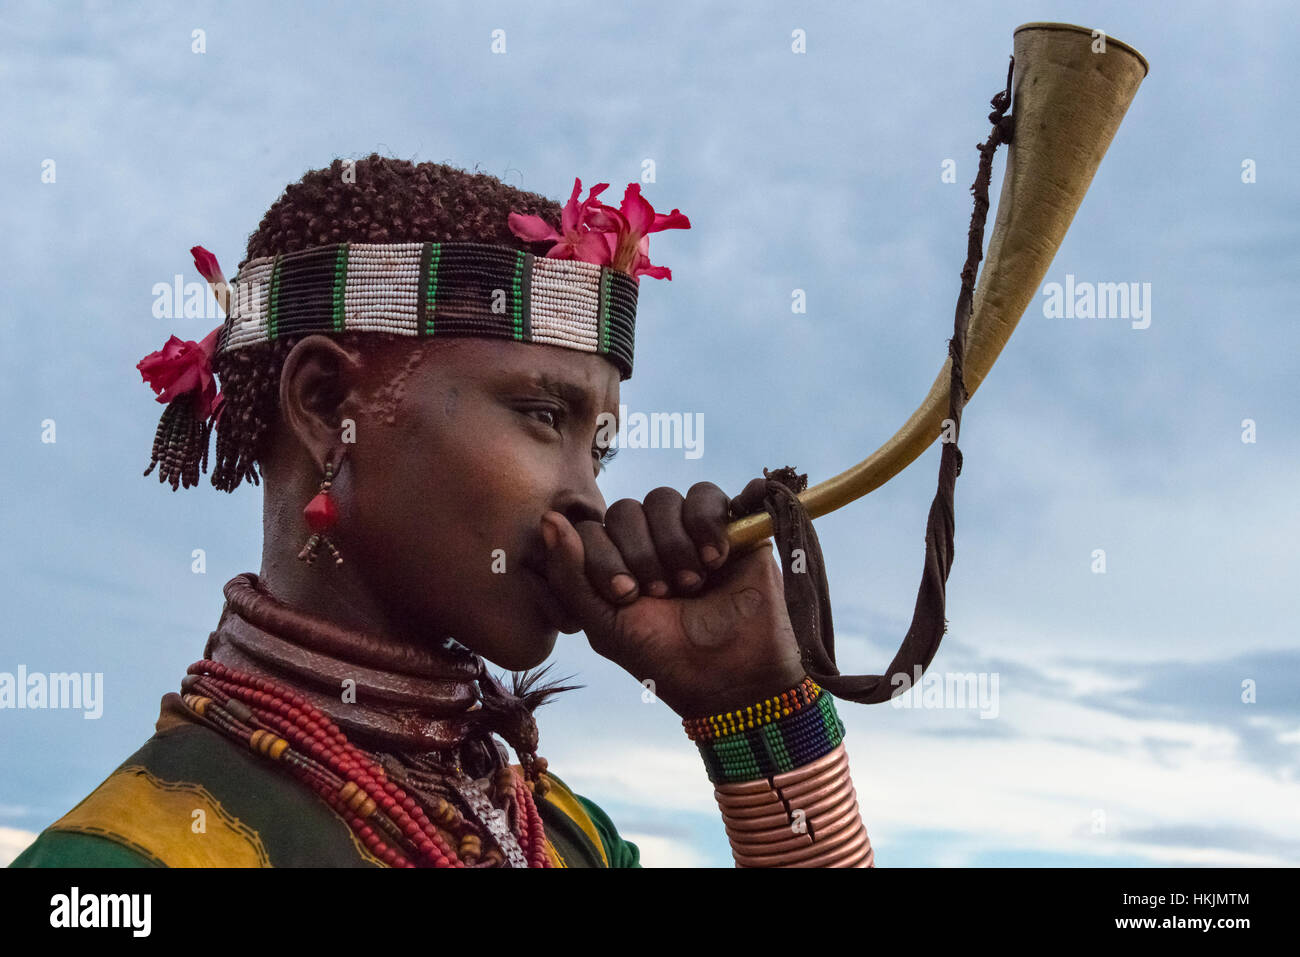 Hamar tribe woman blowing horn in Hamar Village, South Omo, Ethiopia - Stock Image